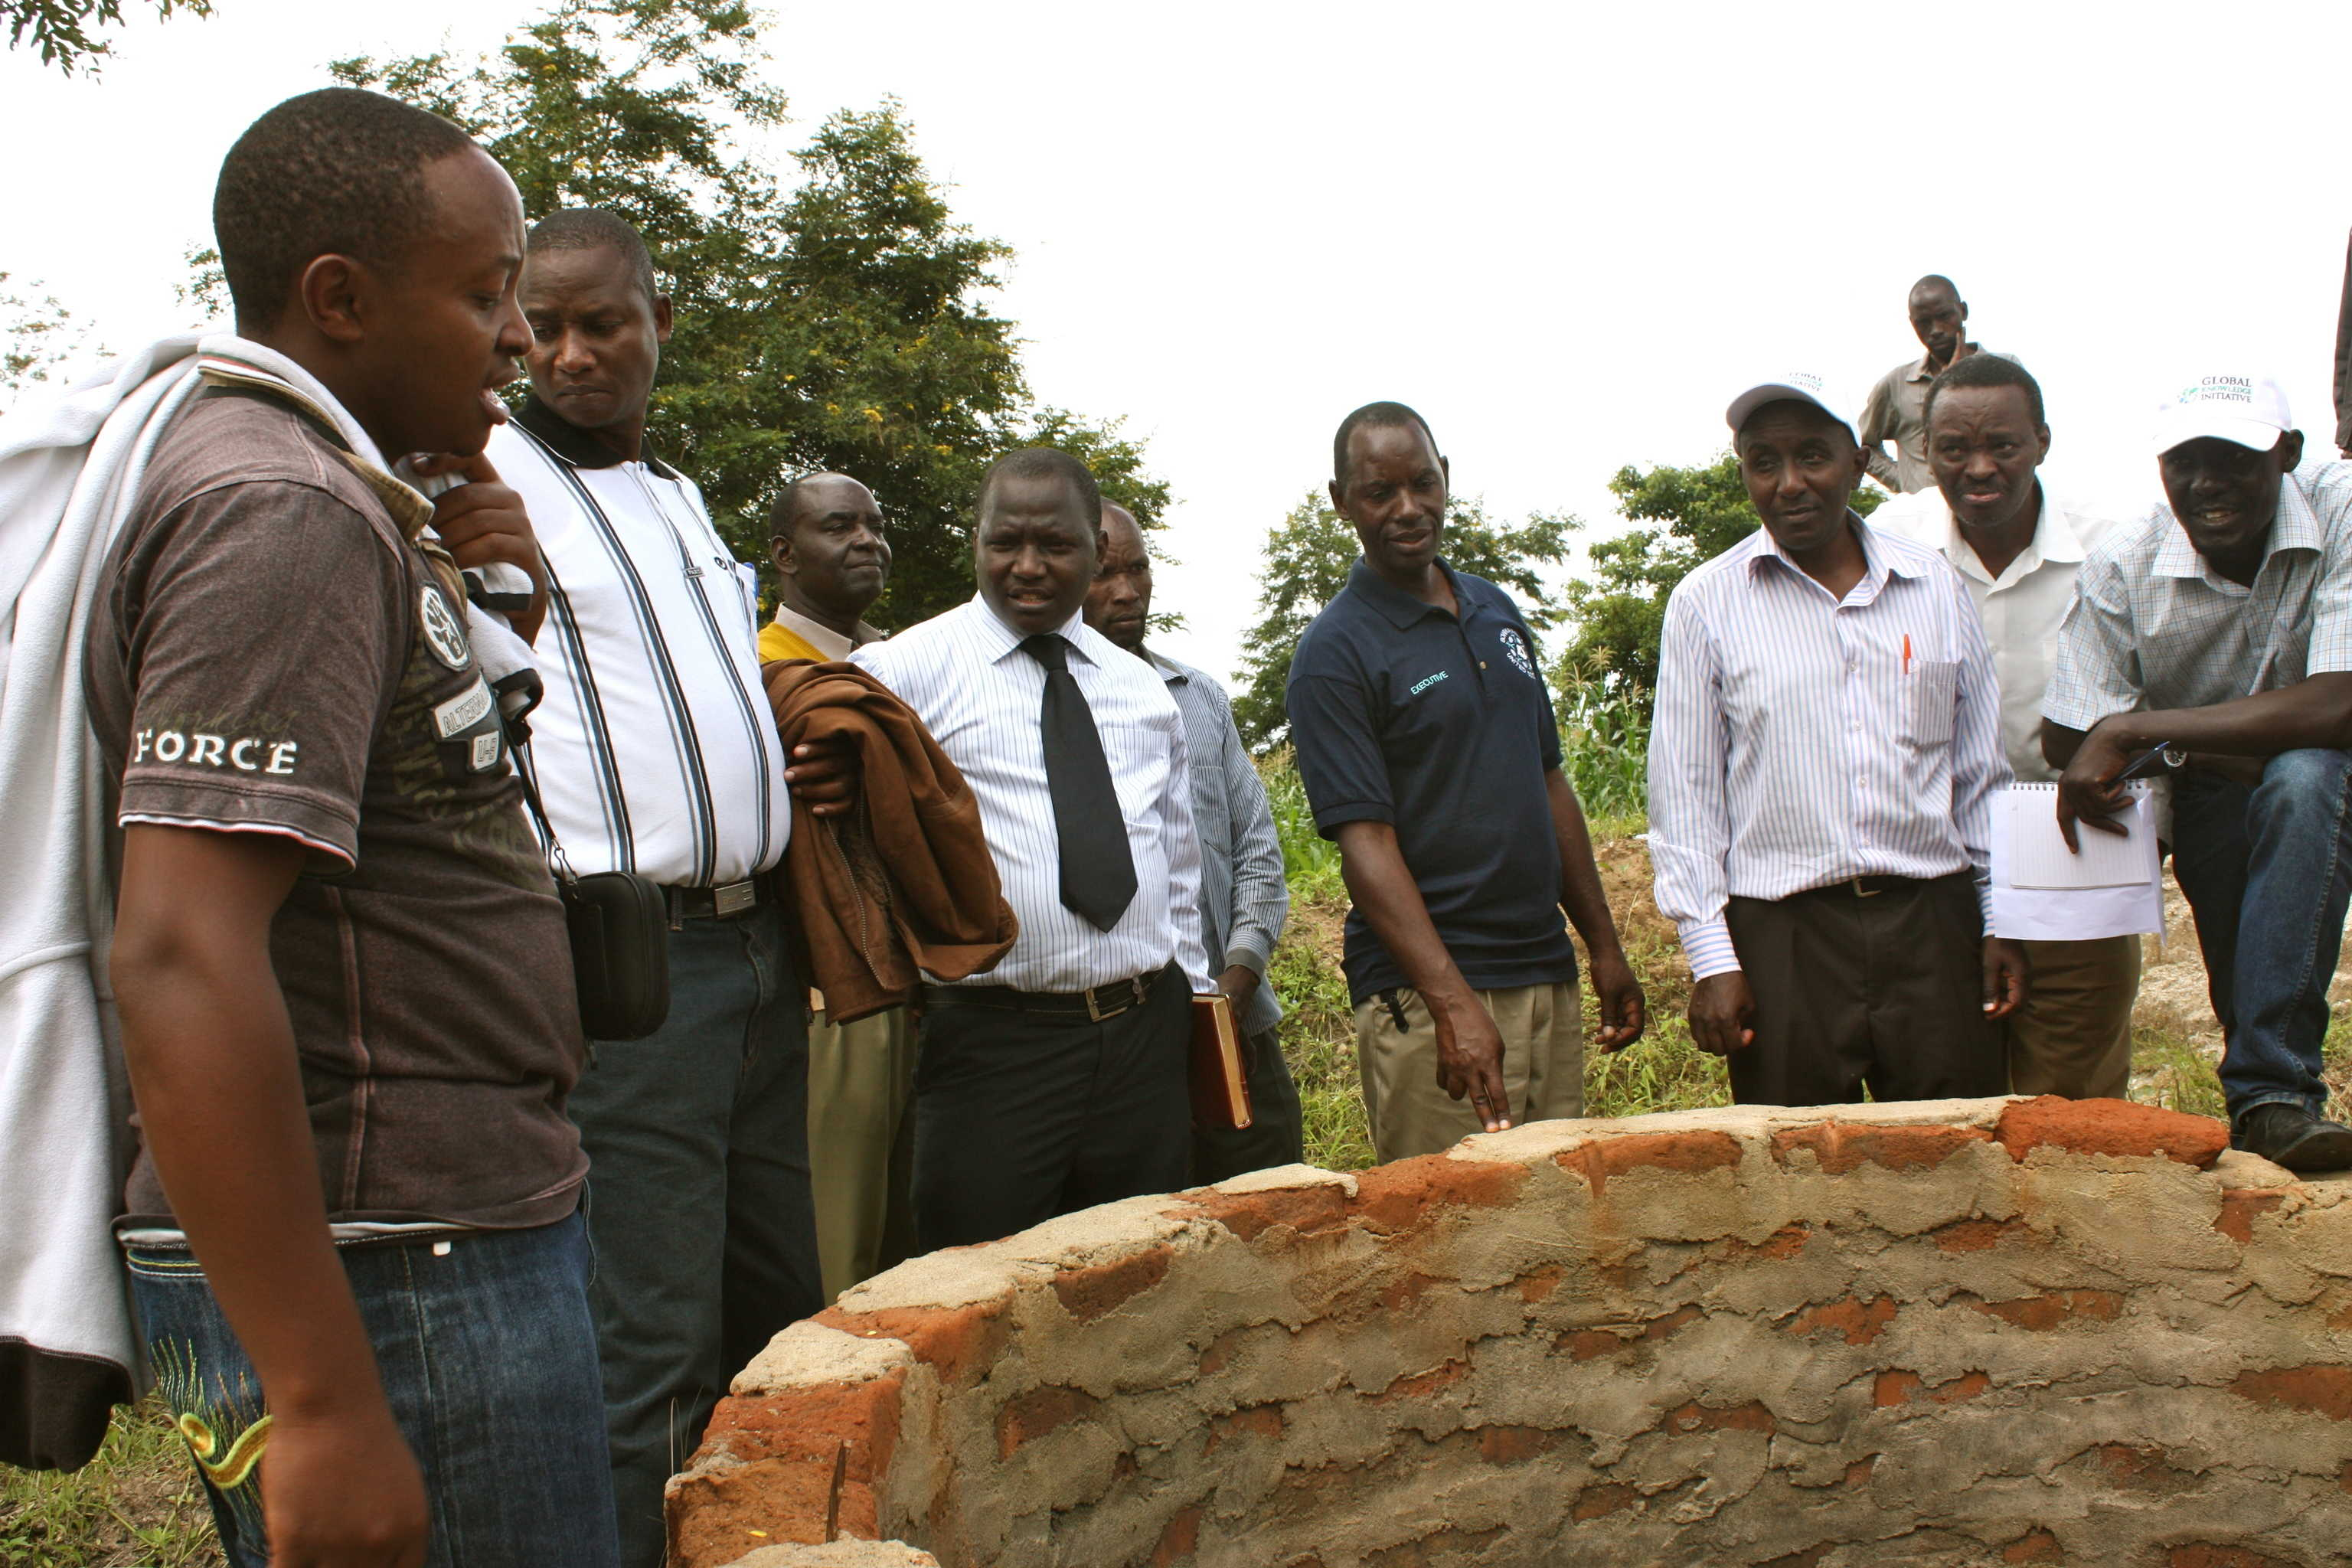 Kenyatta University research team looks at shallow well in Kitui County. Photo: GKI